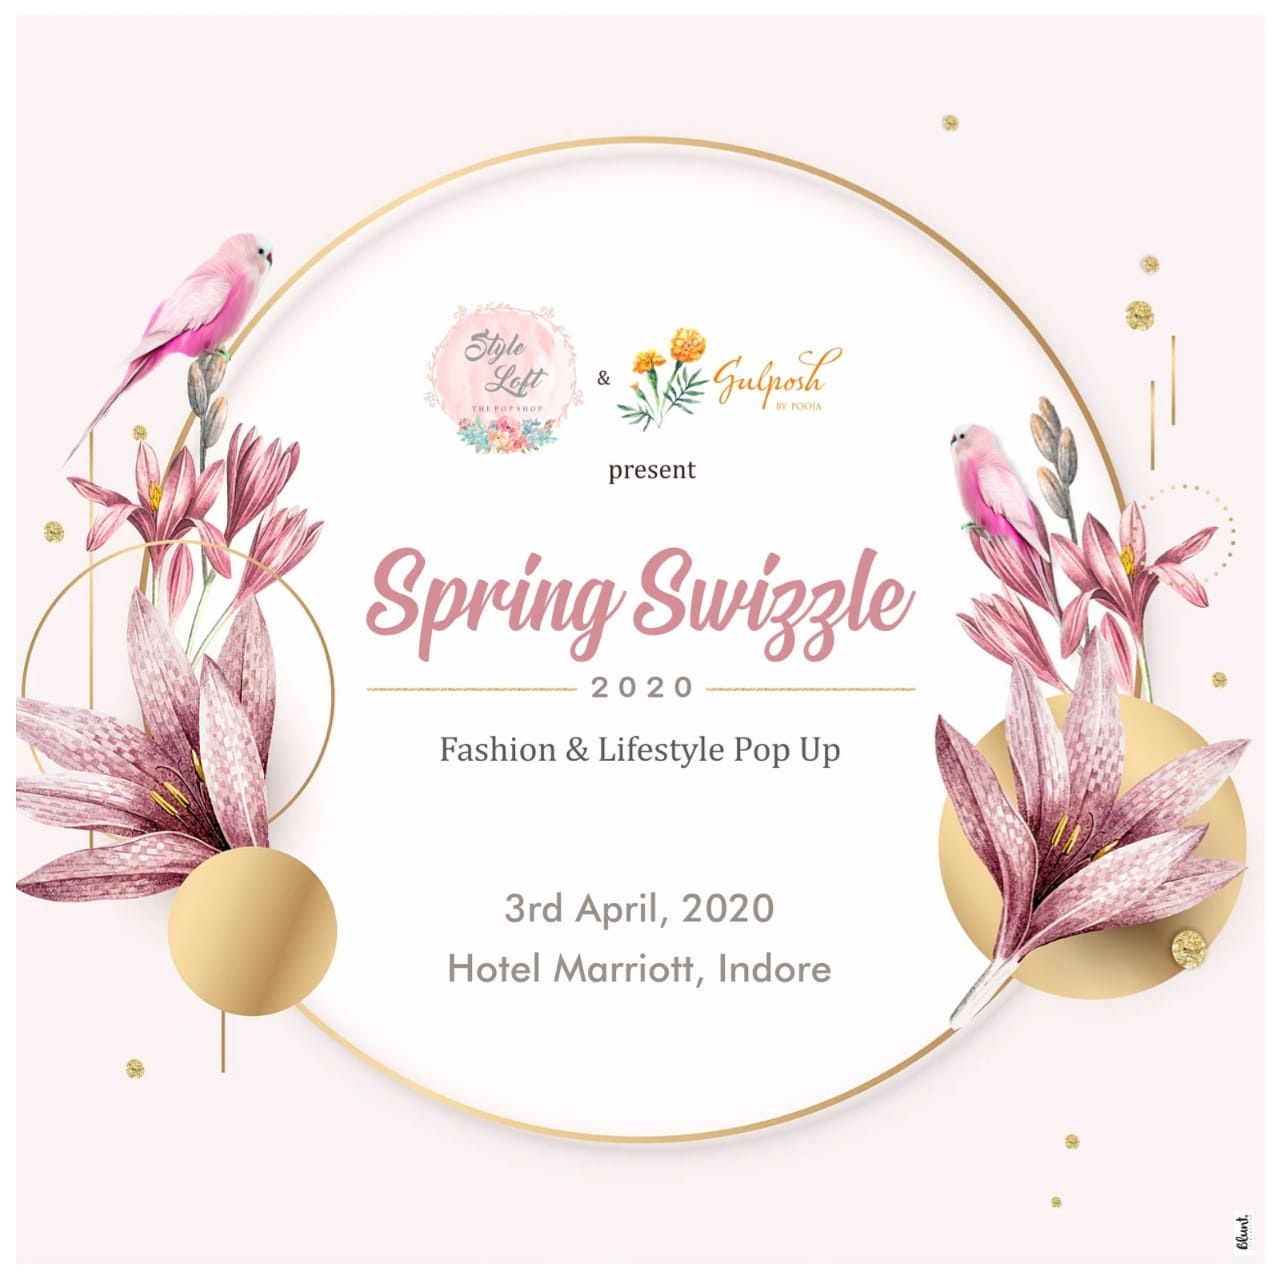 Spring Swizzle Fashion & Lifestyle Pop Up